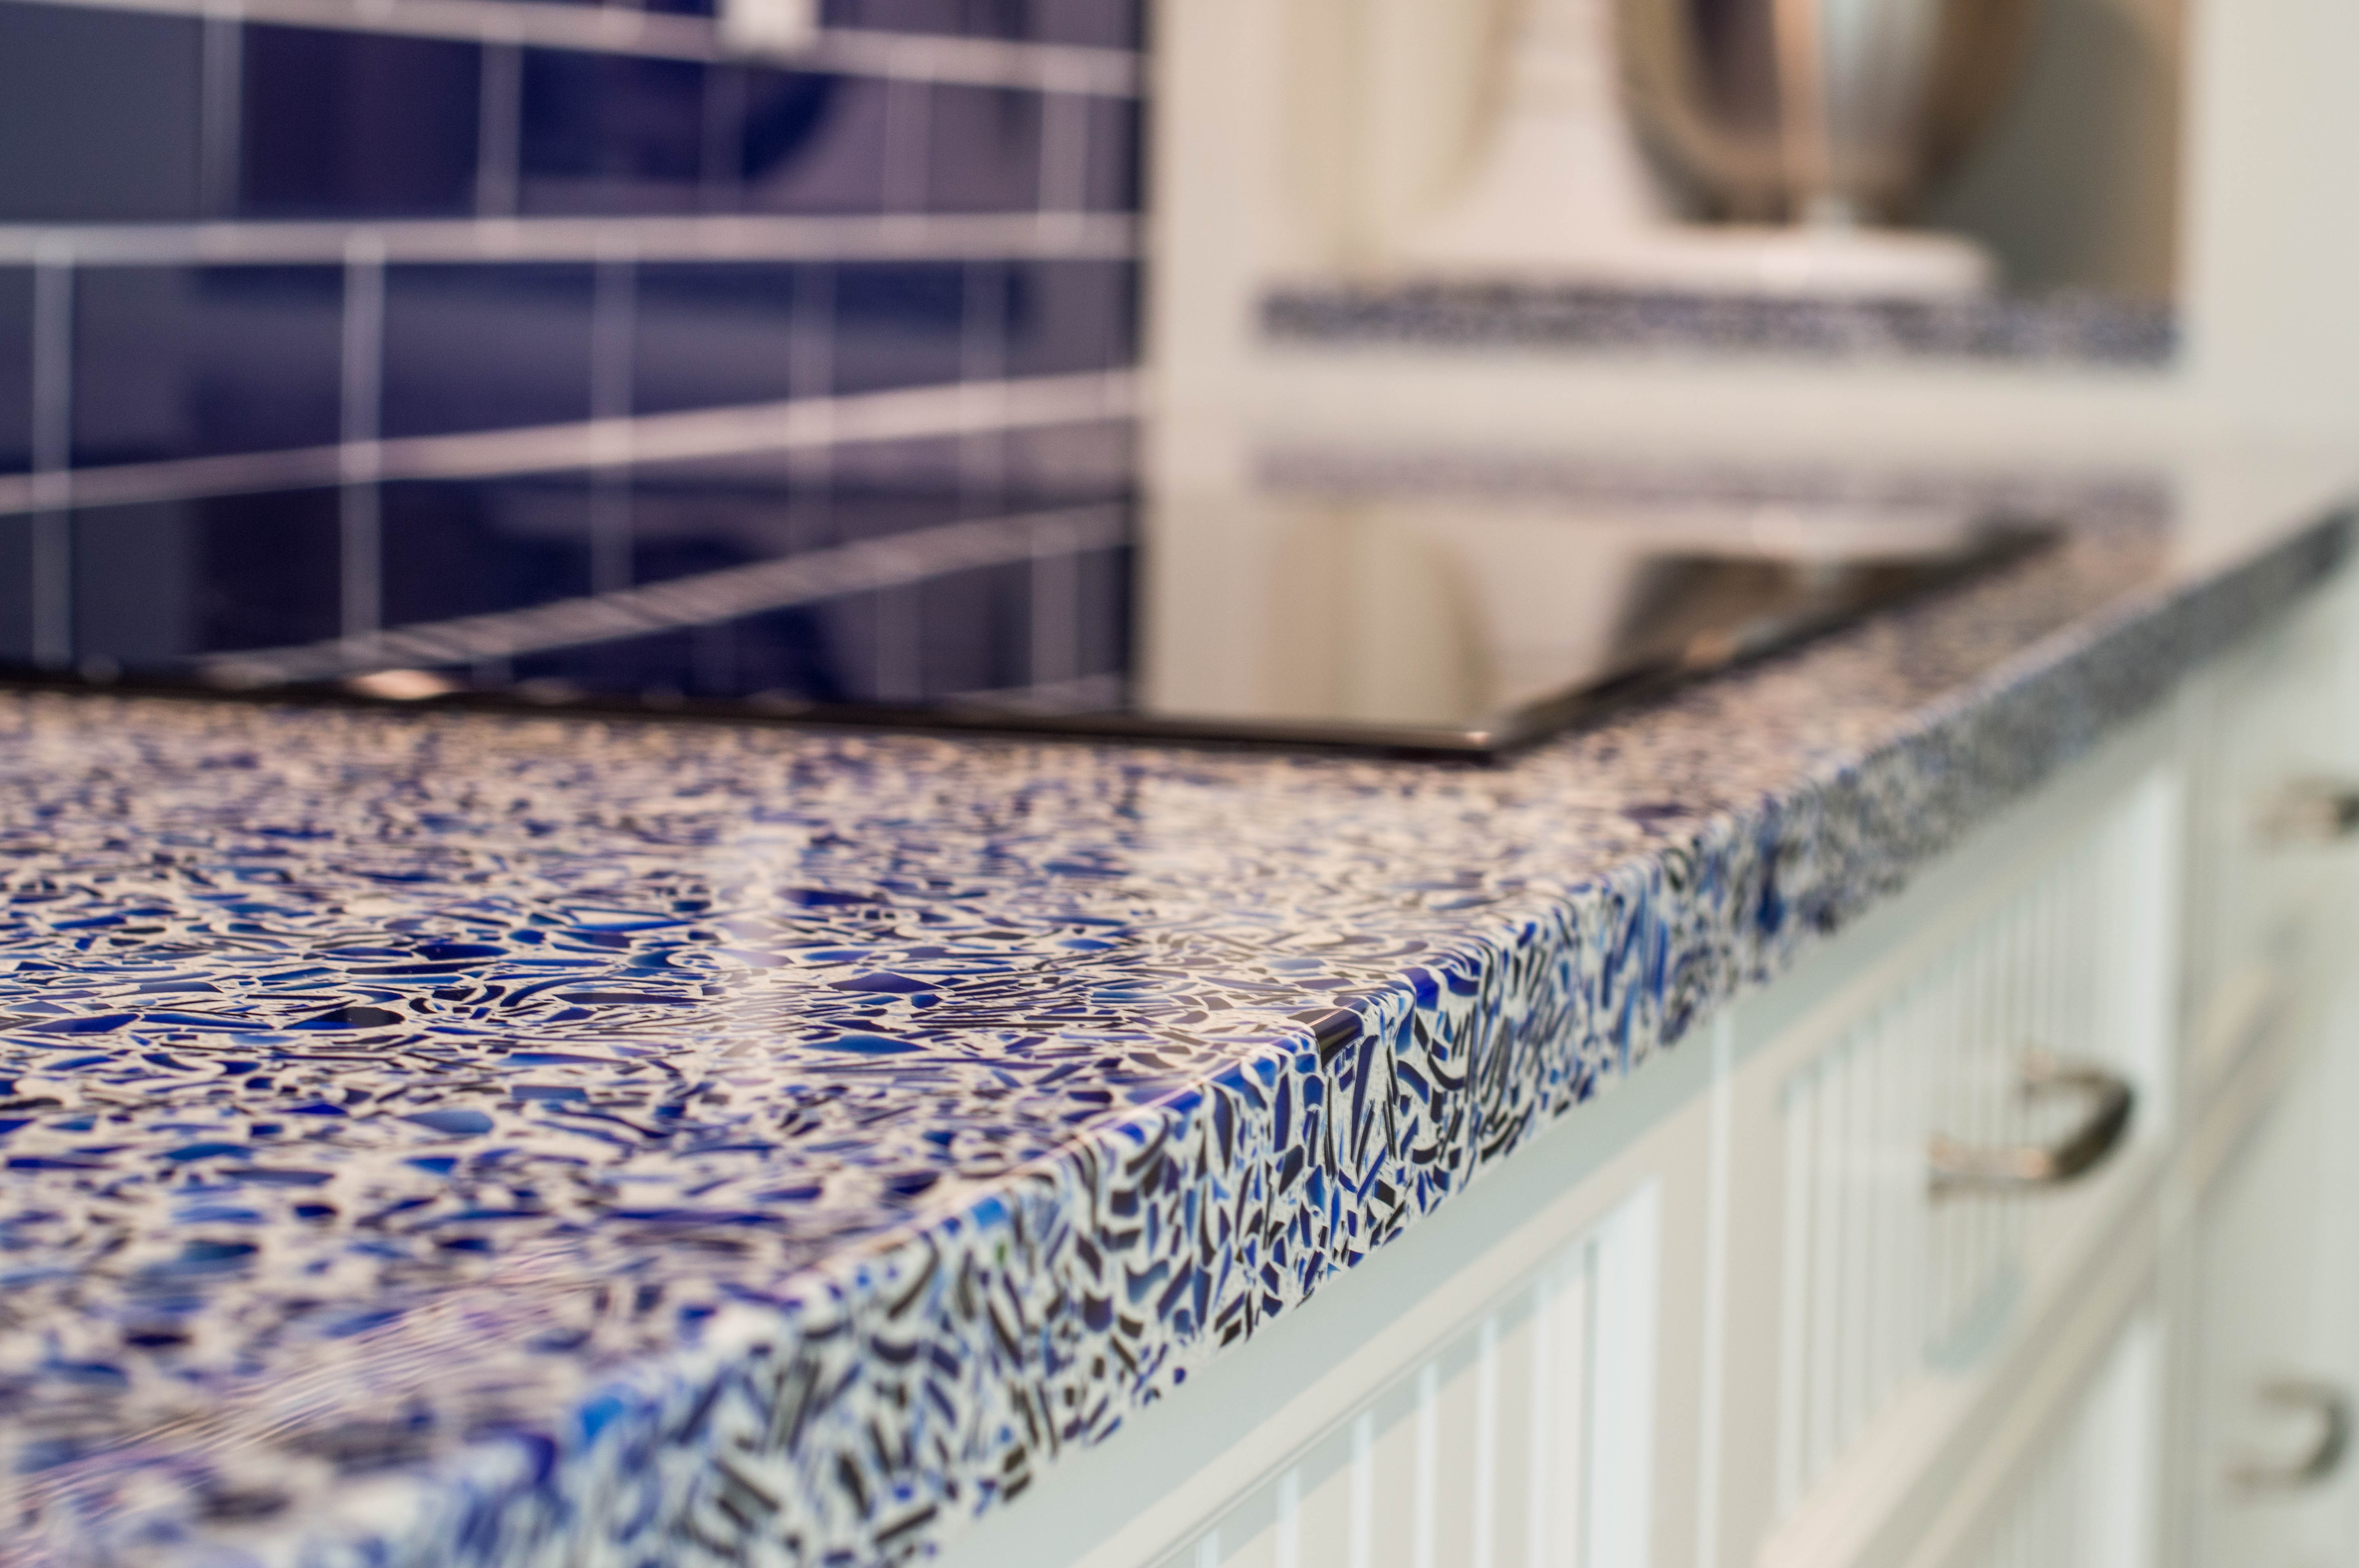 2-cobalt skye vetrazzo recycled glass countertops designed by waterview kitchens featuring crystal cabinets